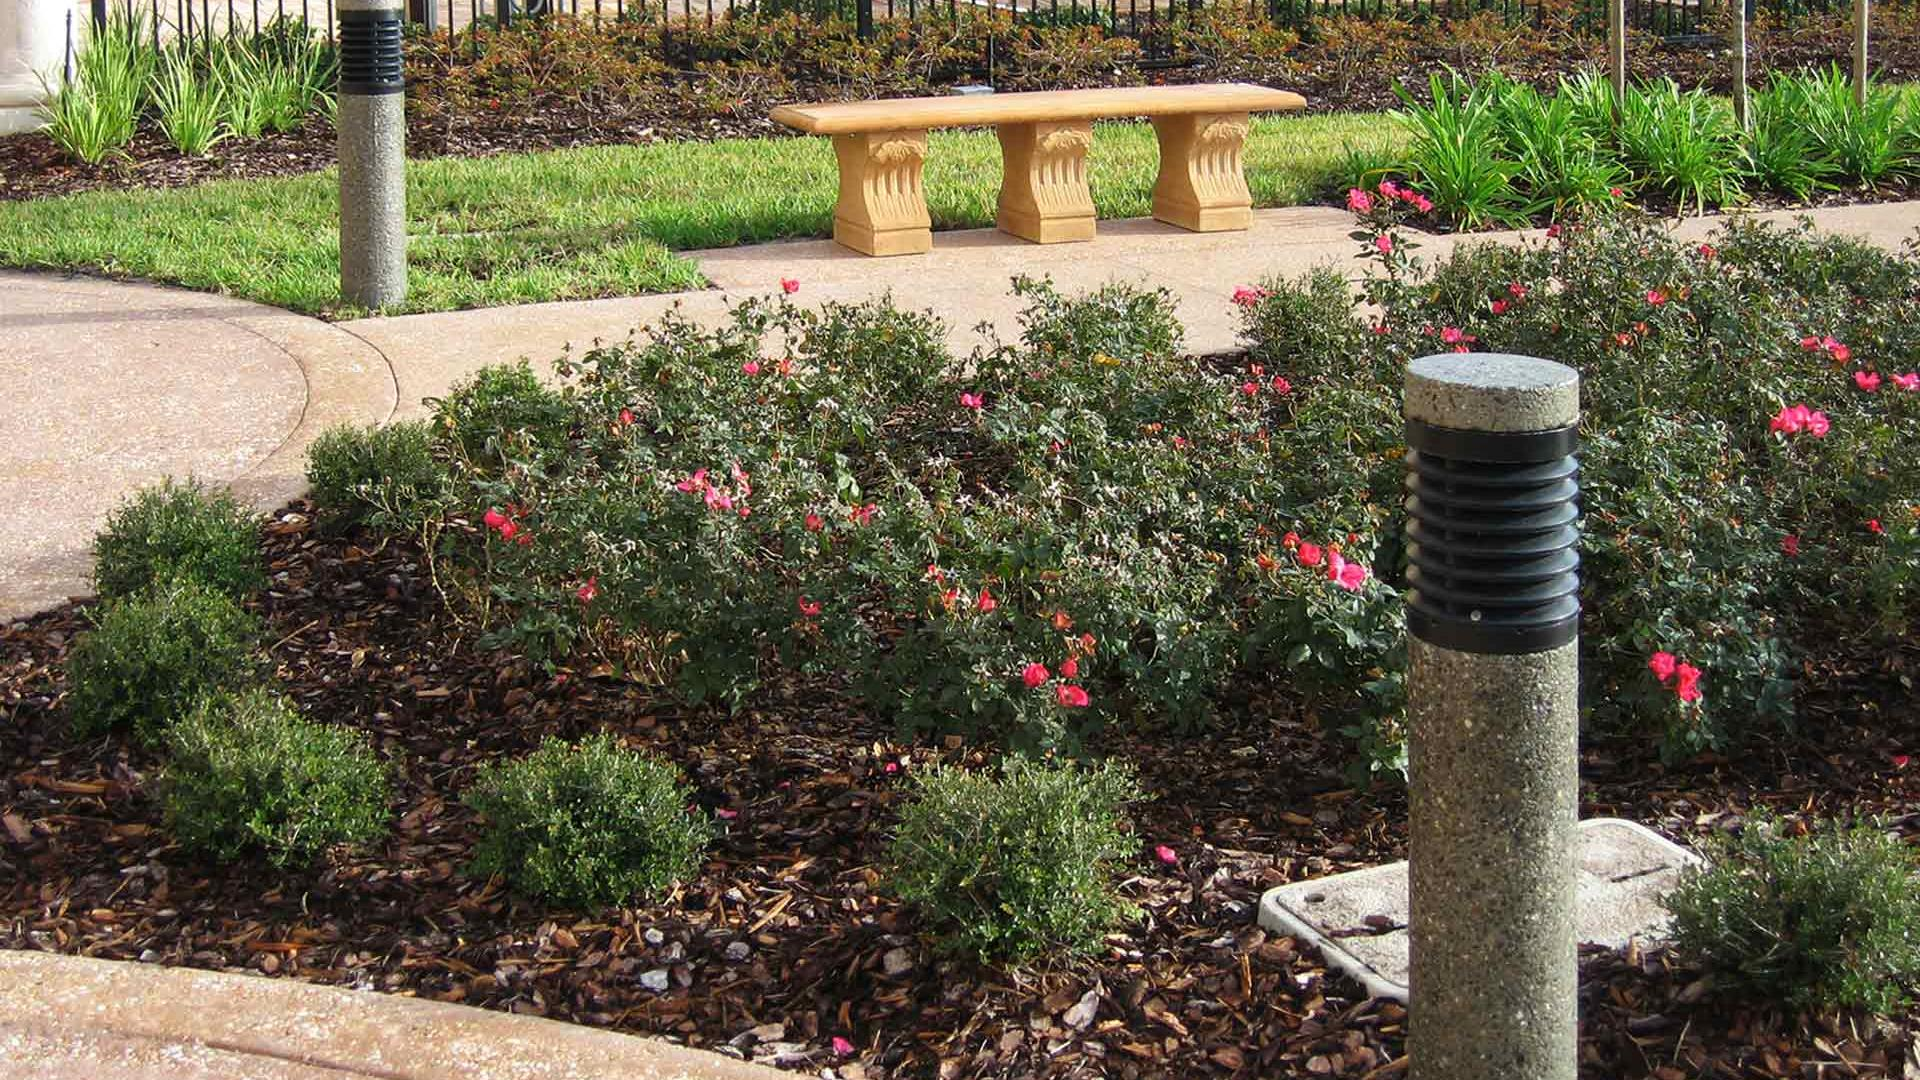 Two Ameron Round Louvered Bollards featured along a path